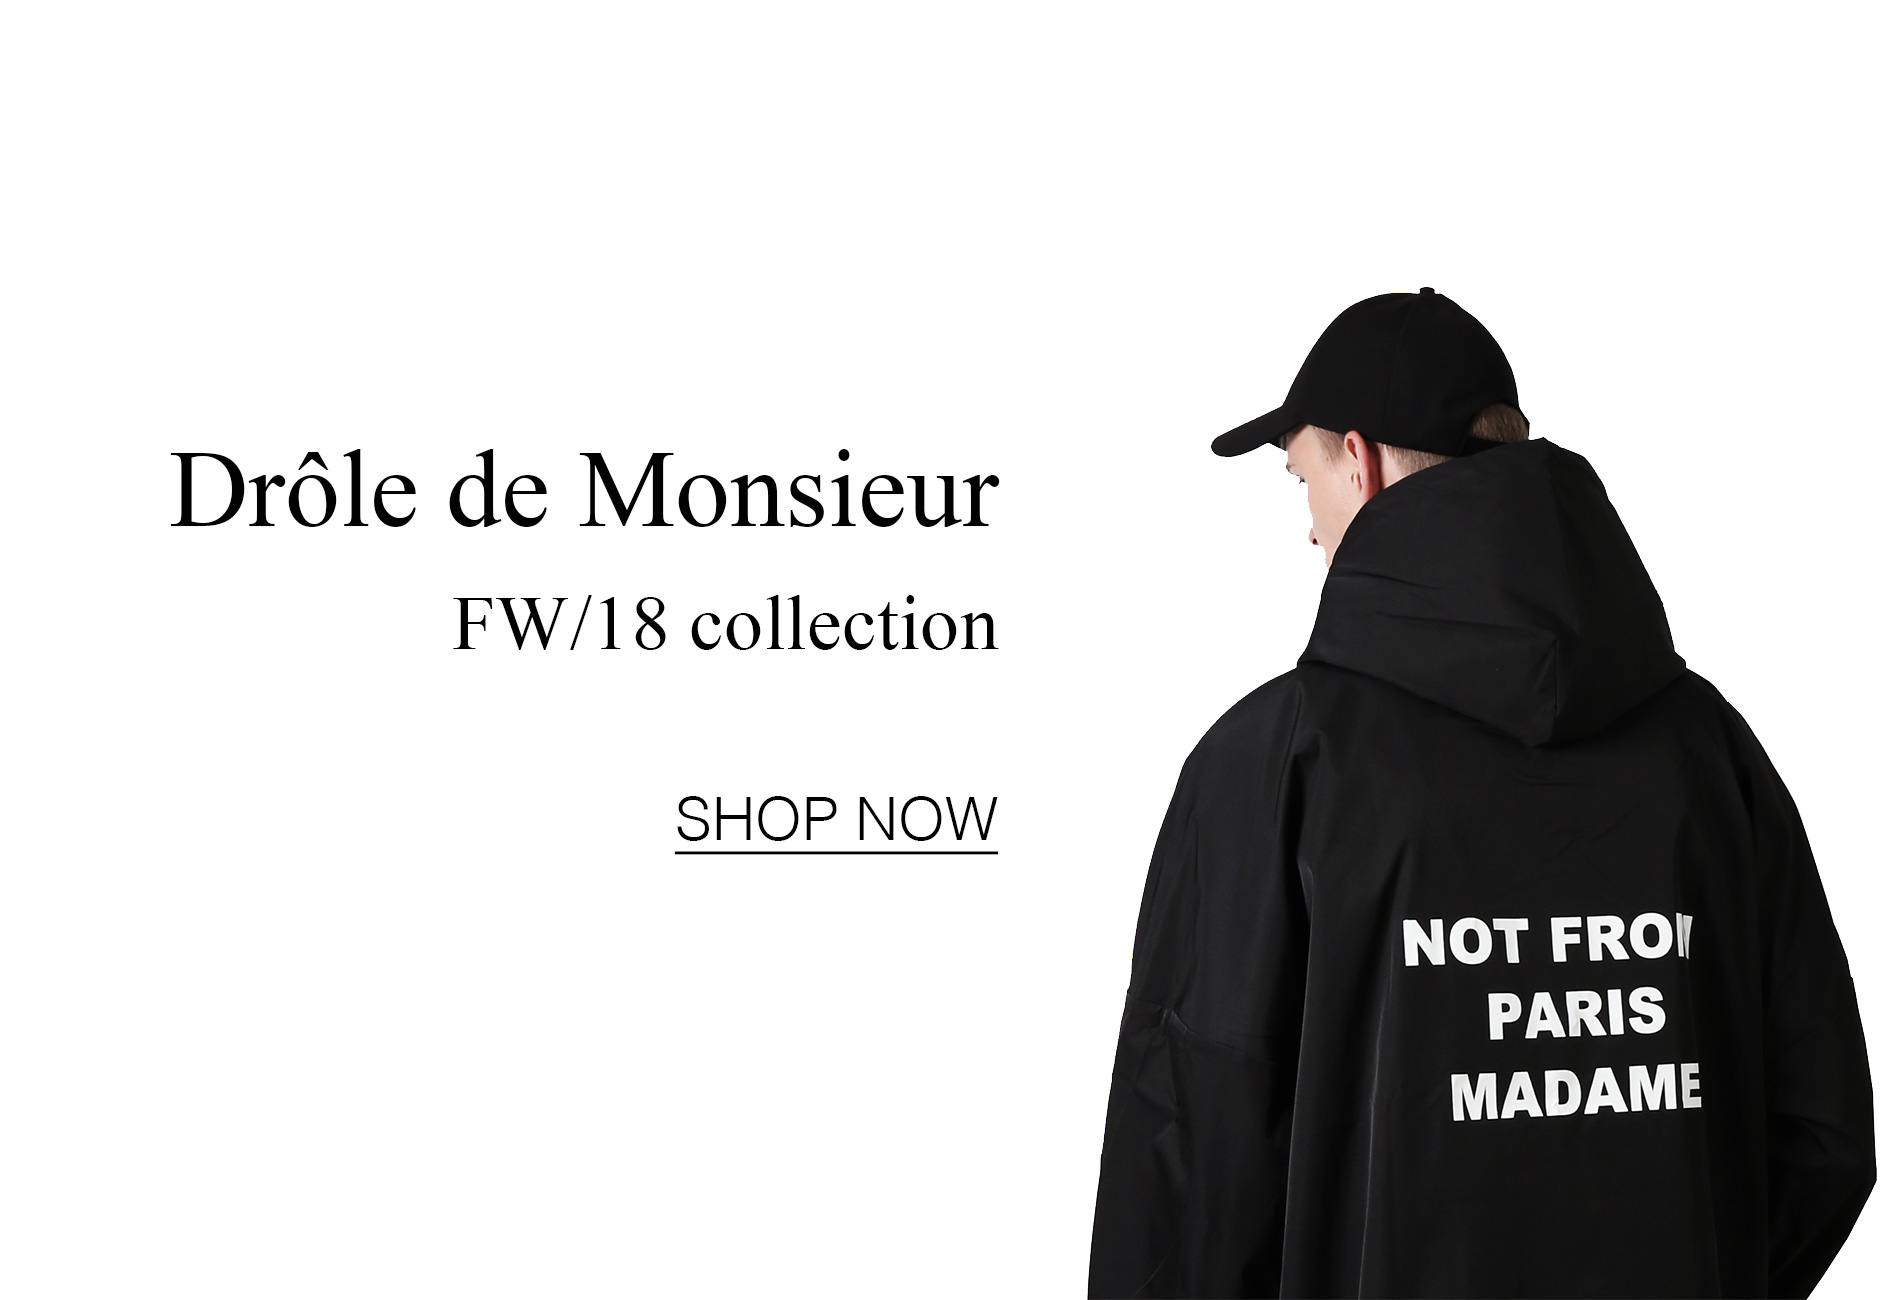 https://shatle.com/en/products/brand/22/drole-de-monsieur?category=1